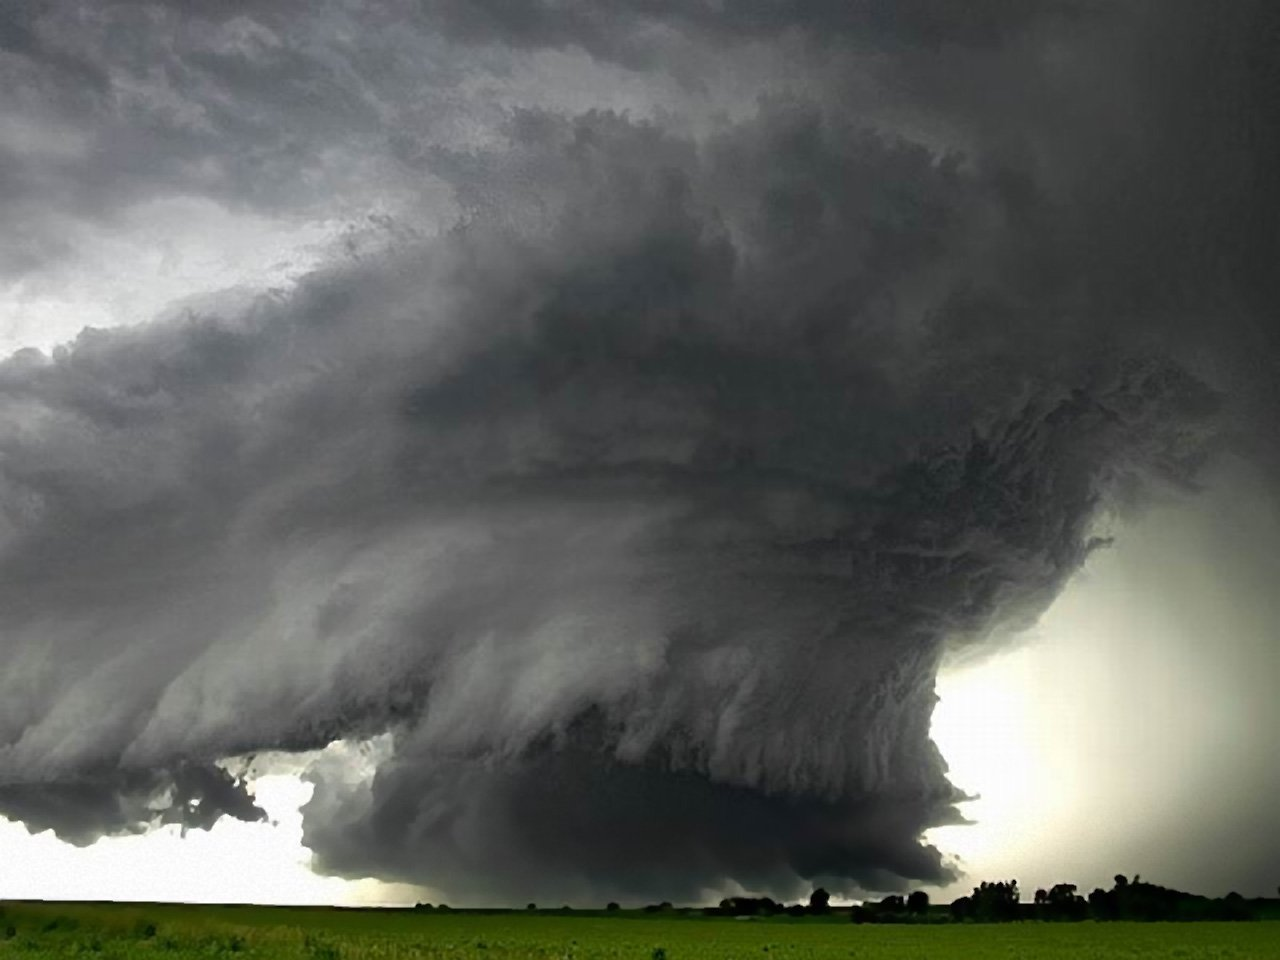 Low Wall Cloud   Weather Wallpaper Image featuring Tornadoes 1280x960